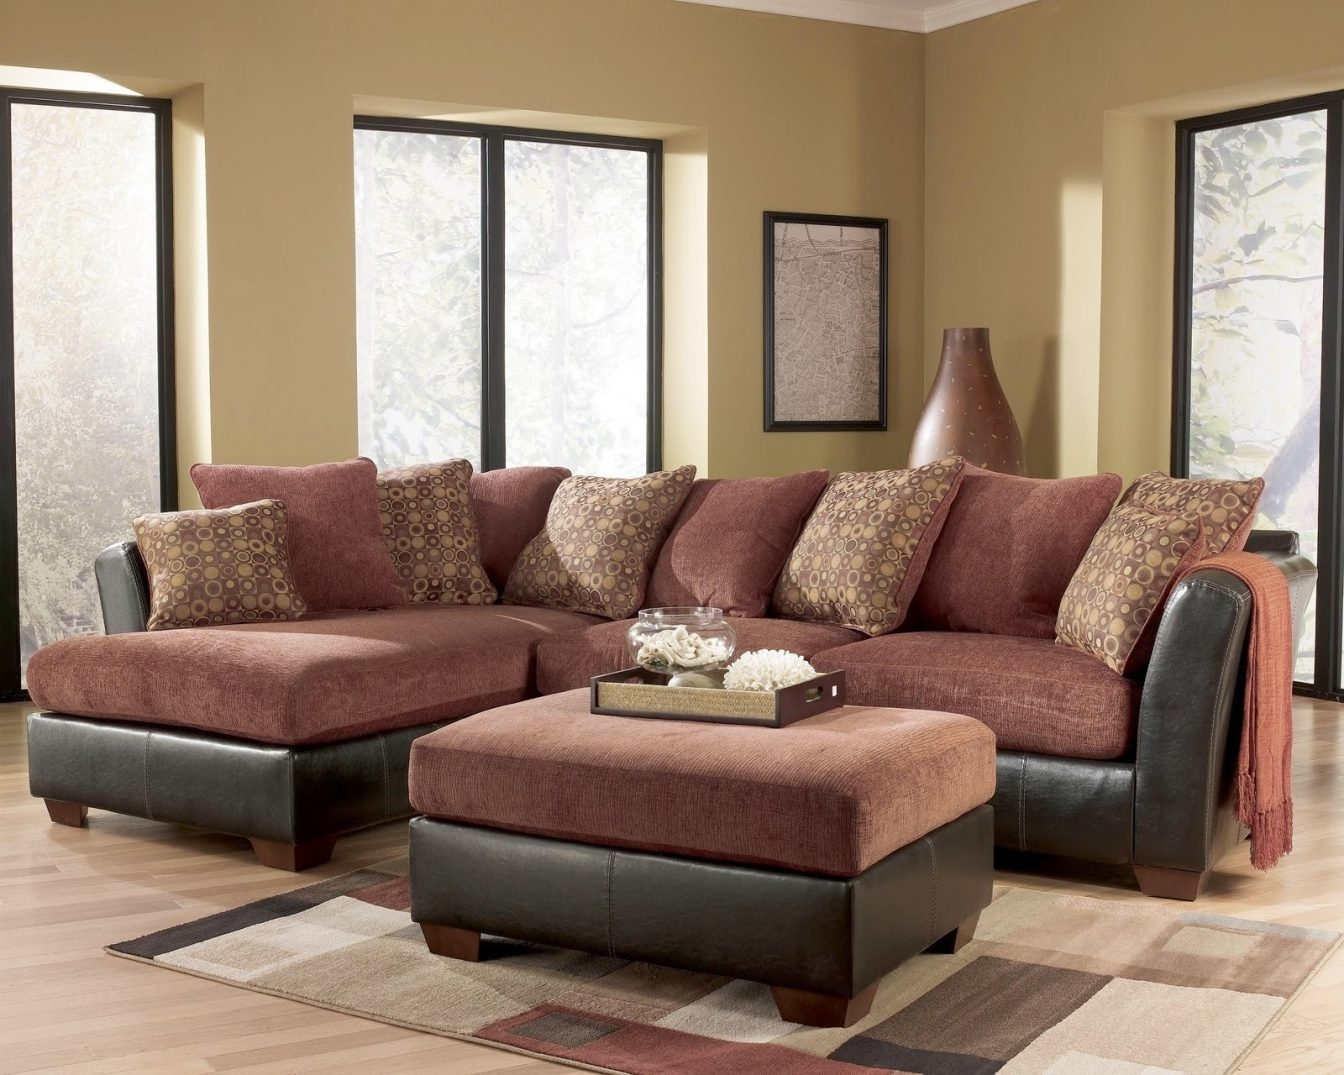 Ashley Furniture Sectional Sofa #2 Ashley Furniture – Larson 31400 Within Favorite Royal Furniture Sectional Sofas (View 1 of 20)